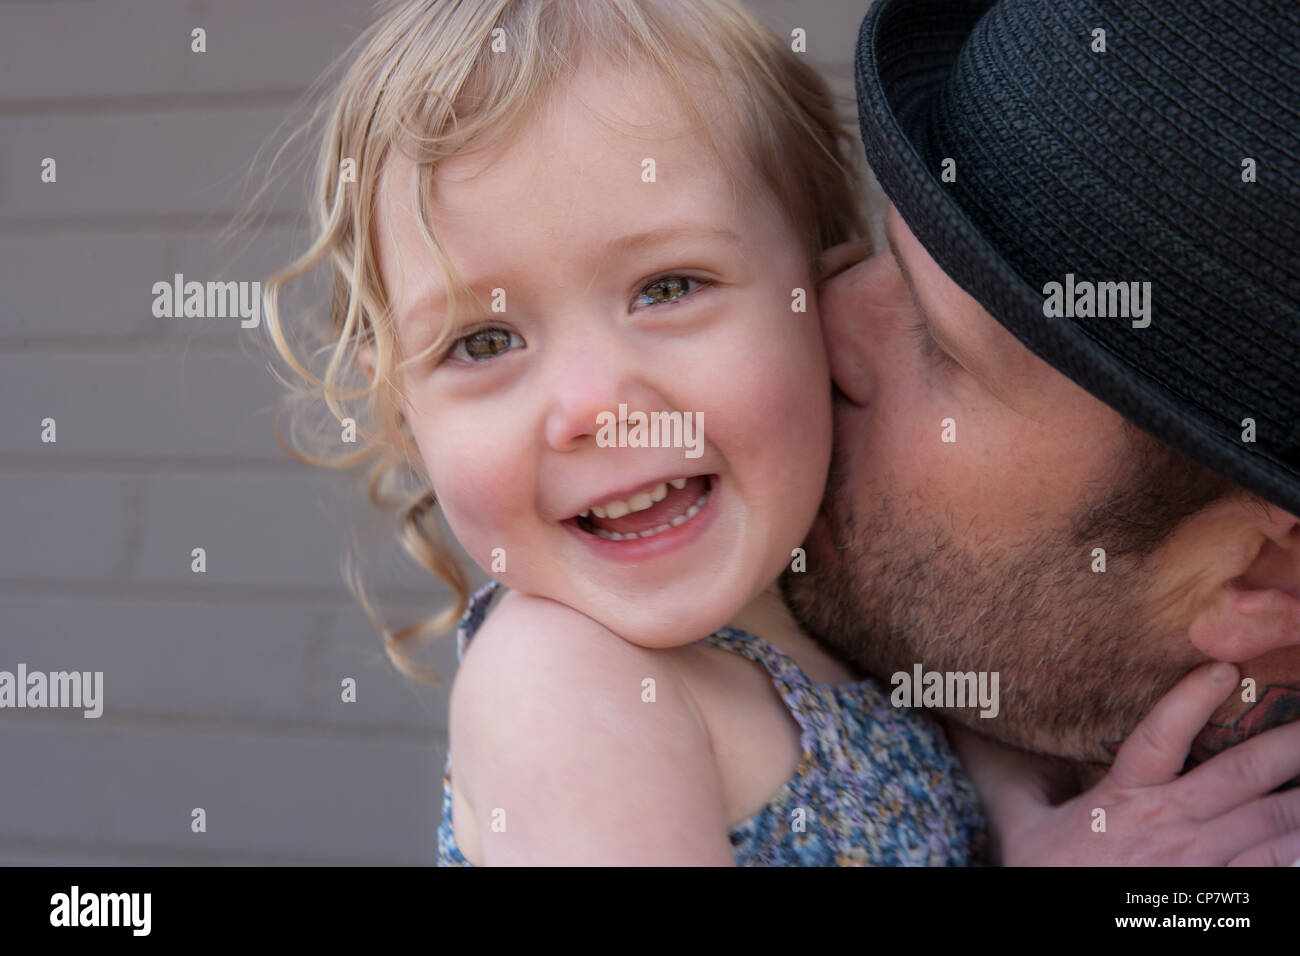 Adorable two year old girl laughs as her dad kisses her neck, close up. - Stock Image